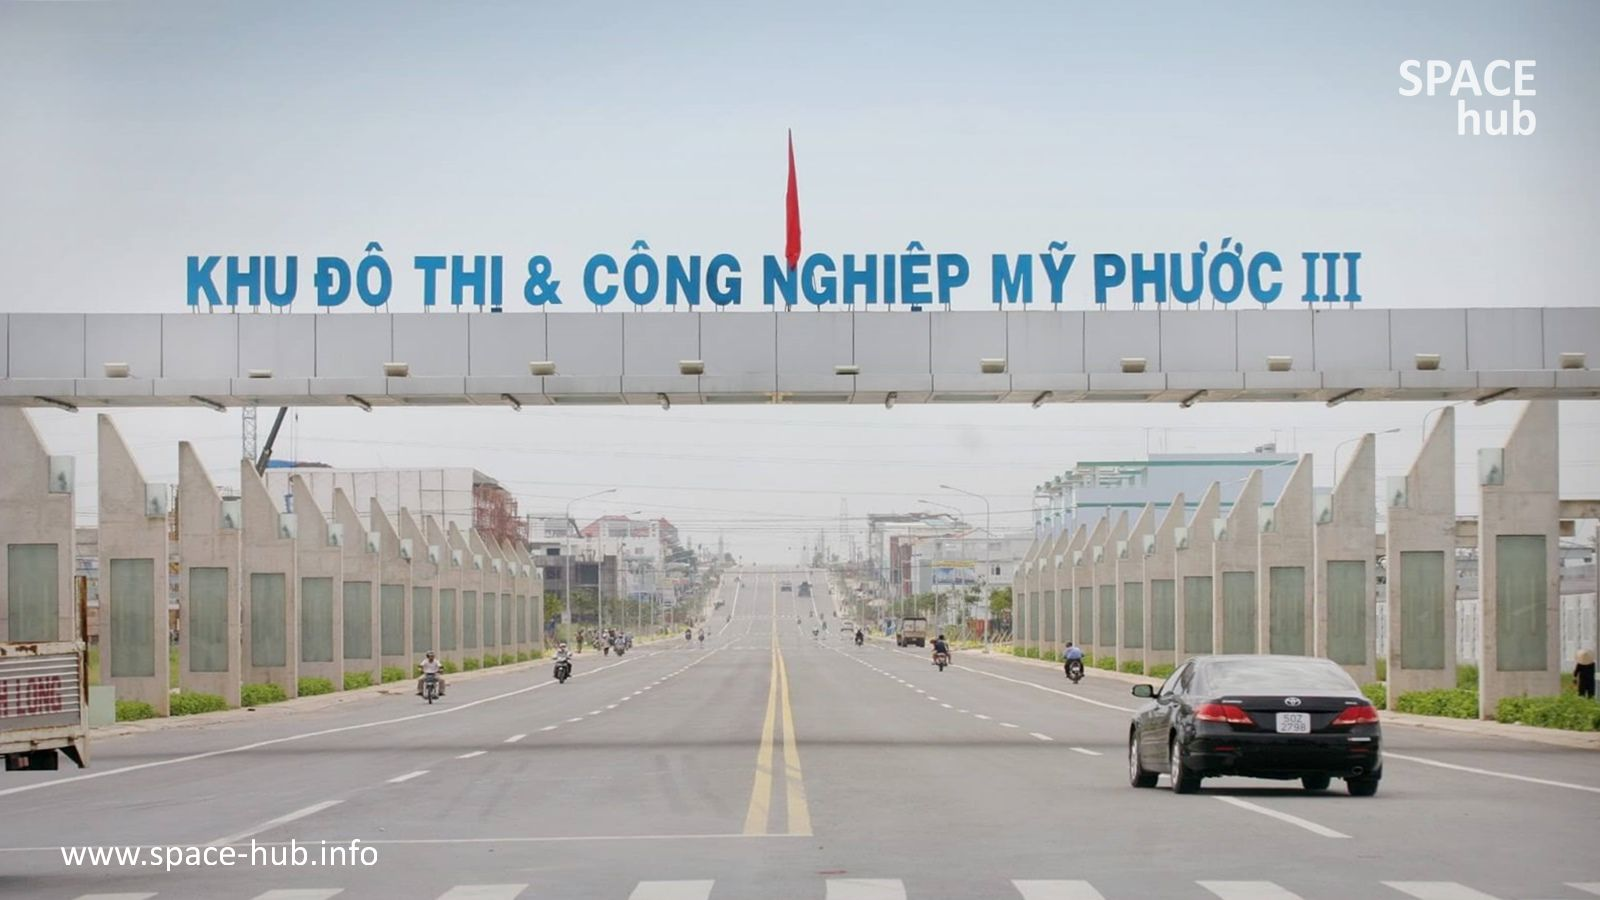 khu cong nghiep my phuoc 3 3 result